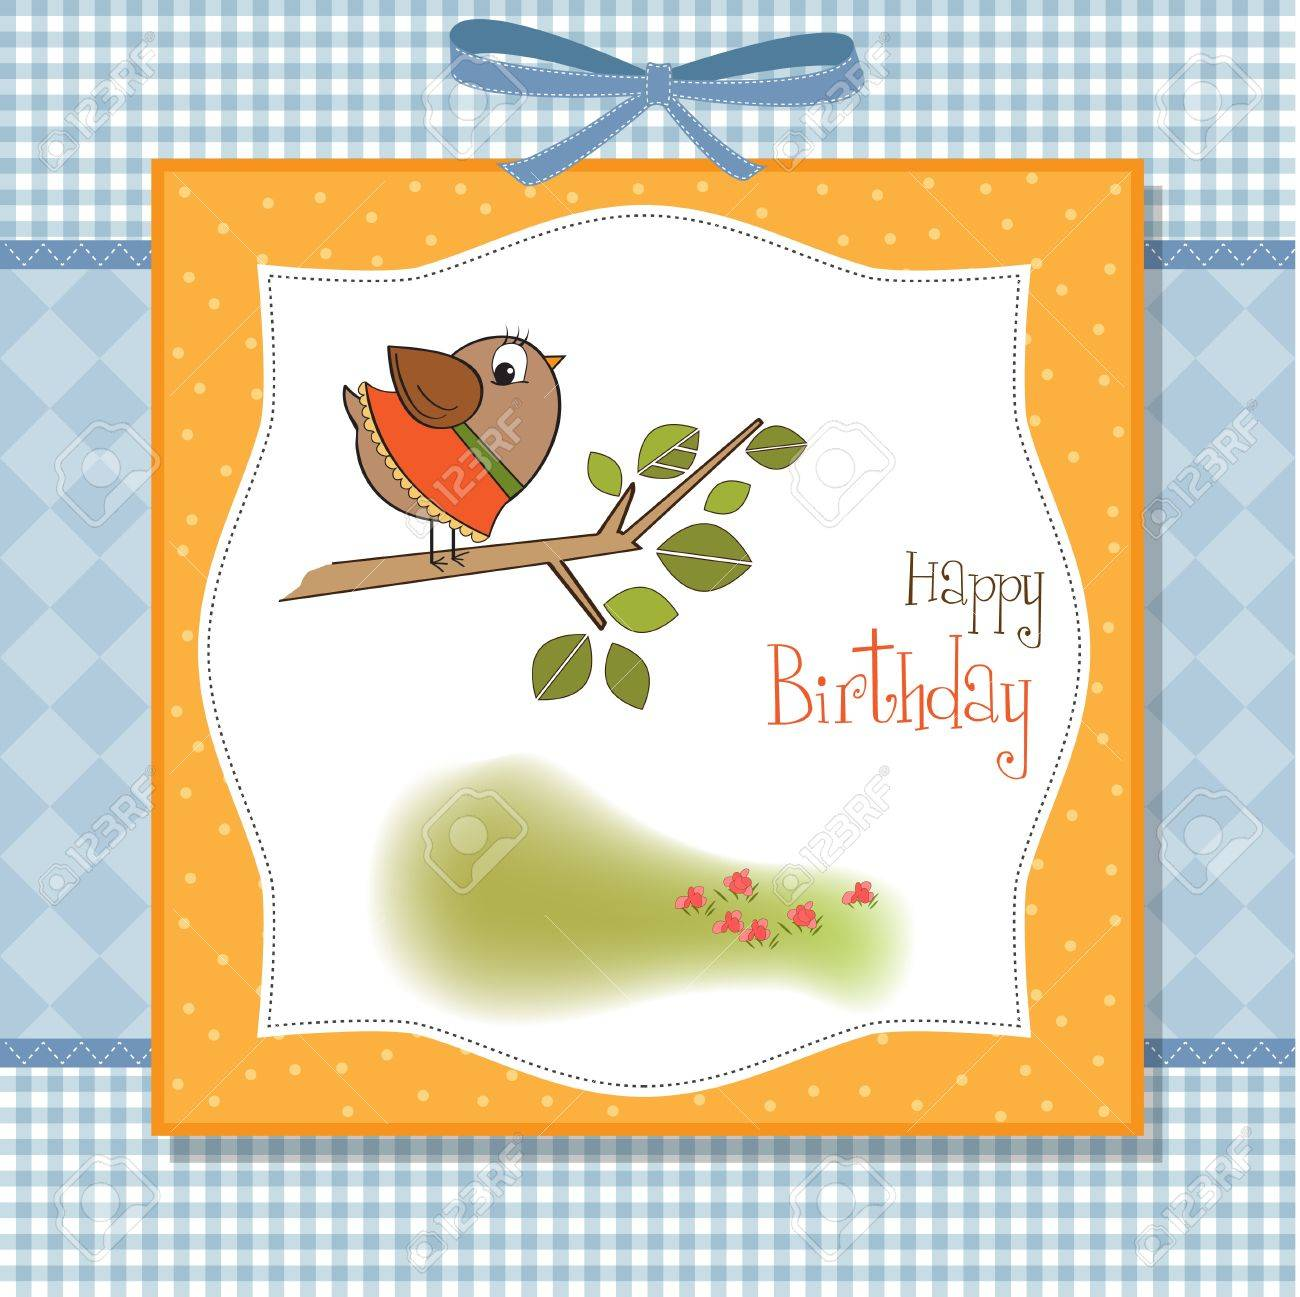 birthday greeting card with funny little bird Stock Vector - 11497814